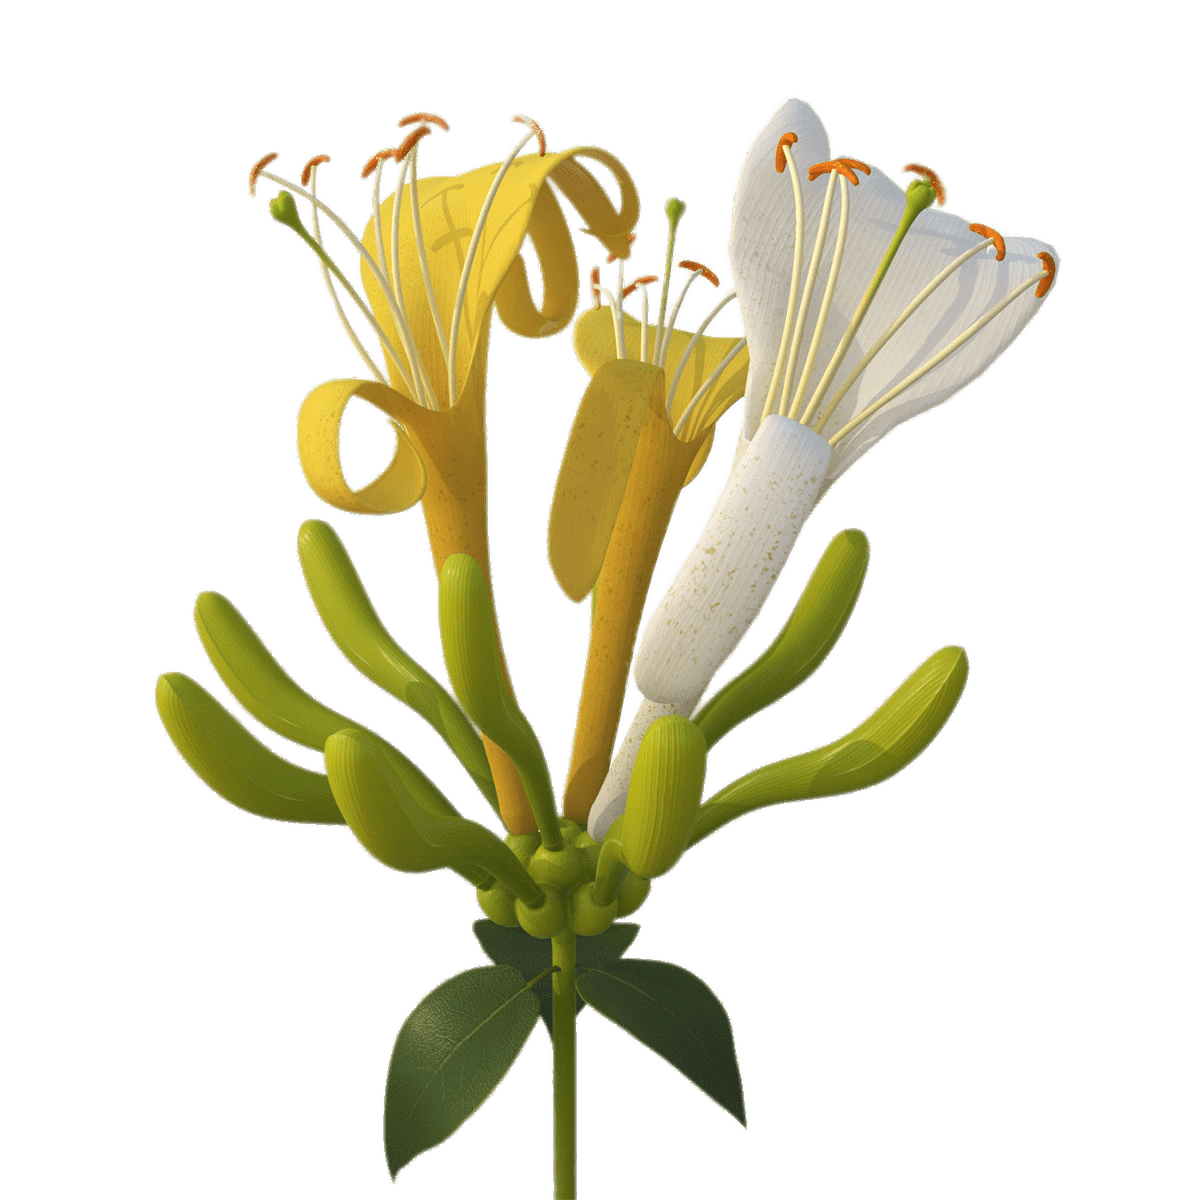 Yellow And White Honeysuckle Flowers Transparent Png Stickpng